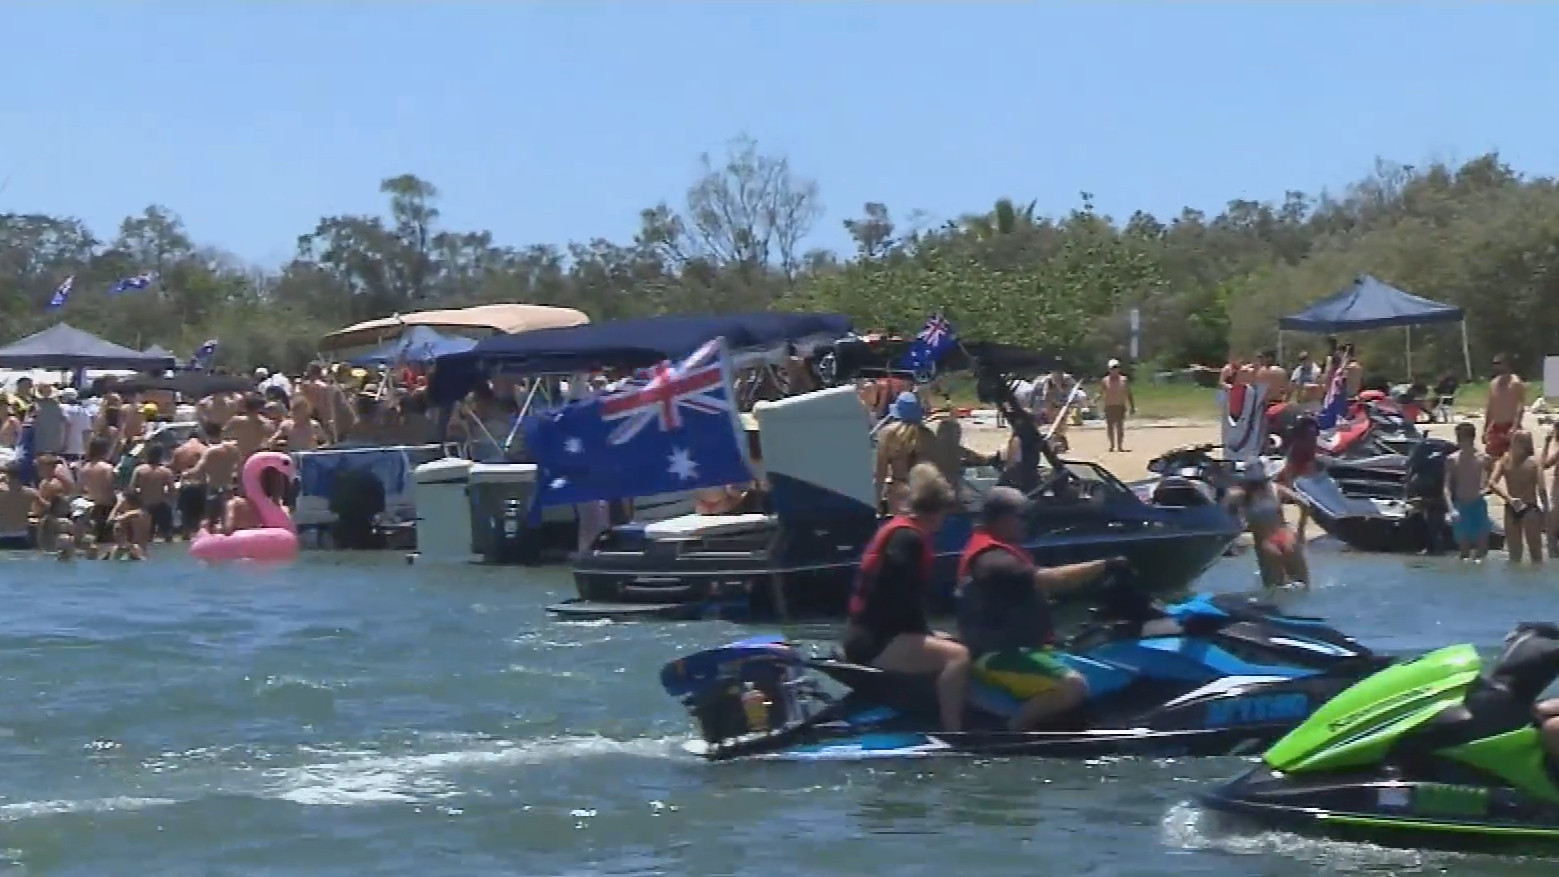 Gold Coast's Broadwater comes alive on Australia Day